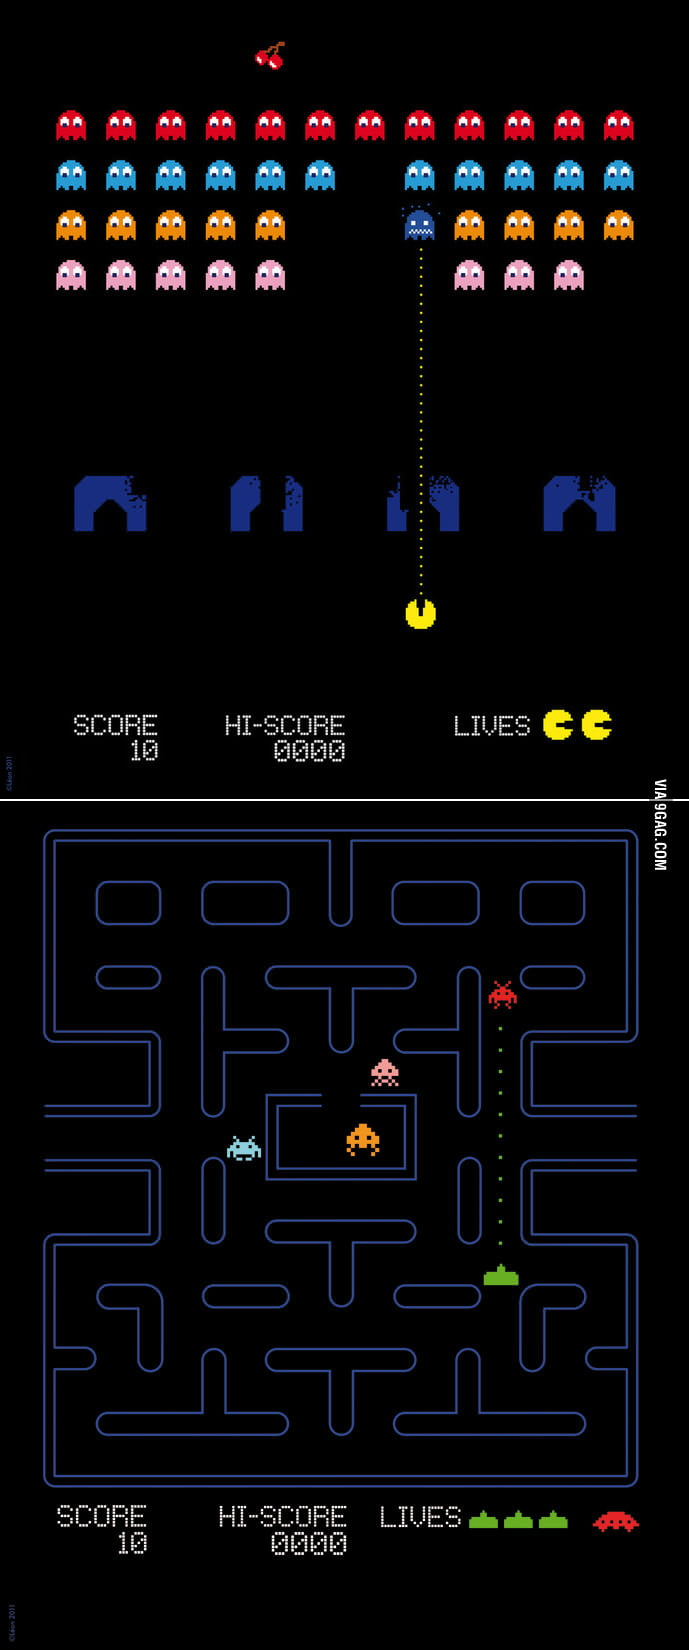 Pacman x Space Invaders, which game would be more fun?